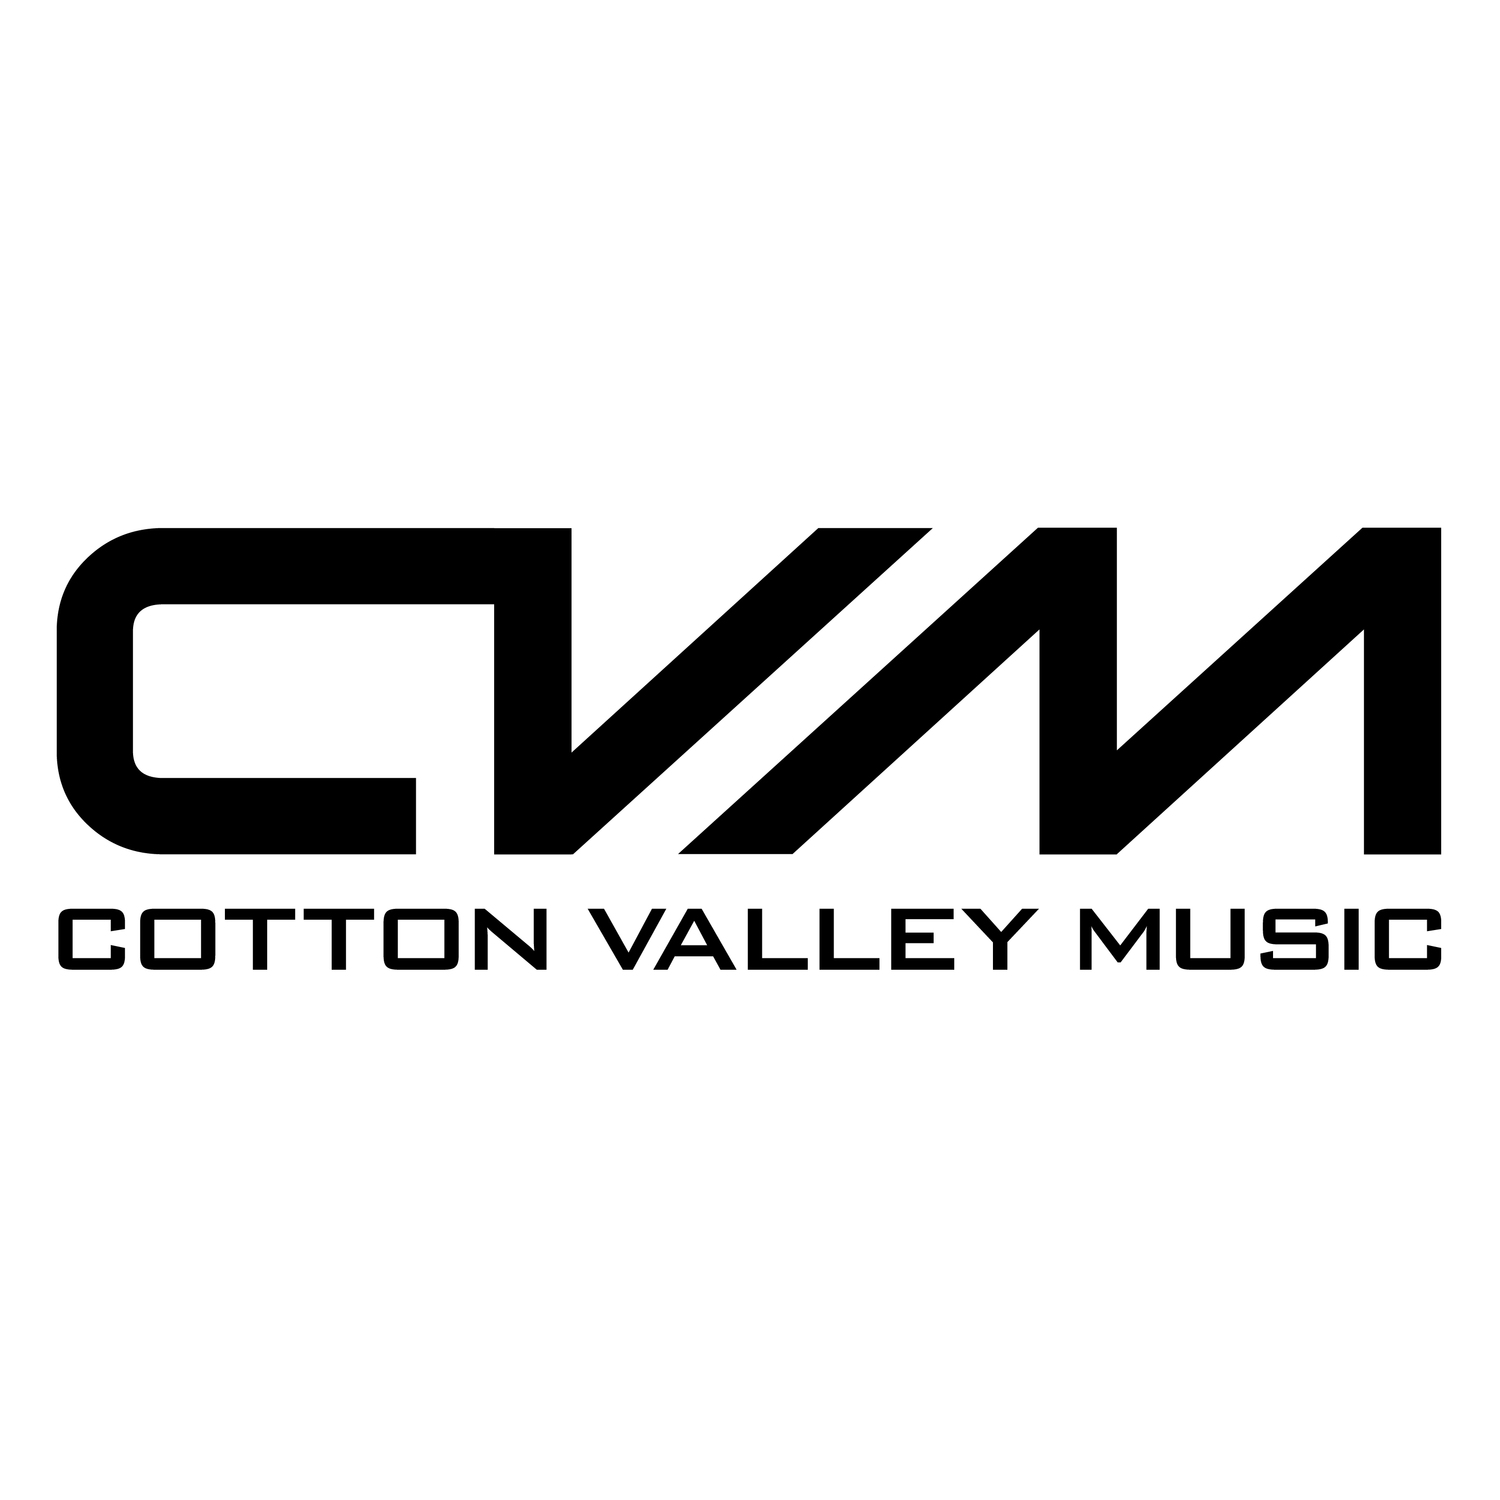 Cotton Valley Music